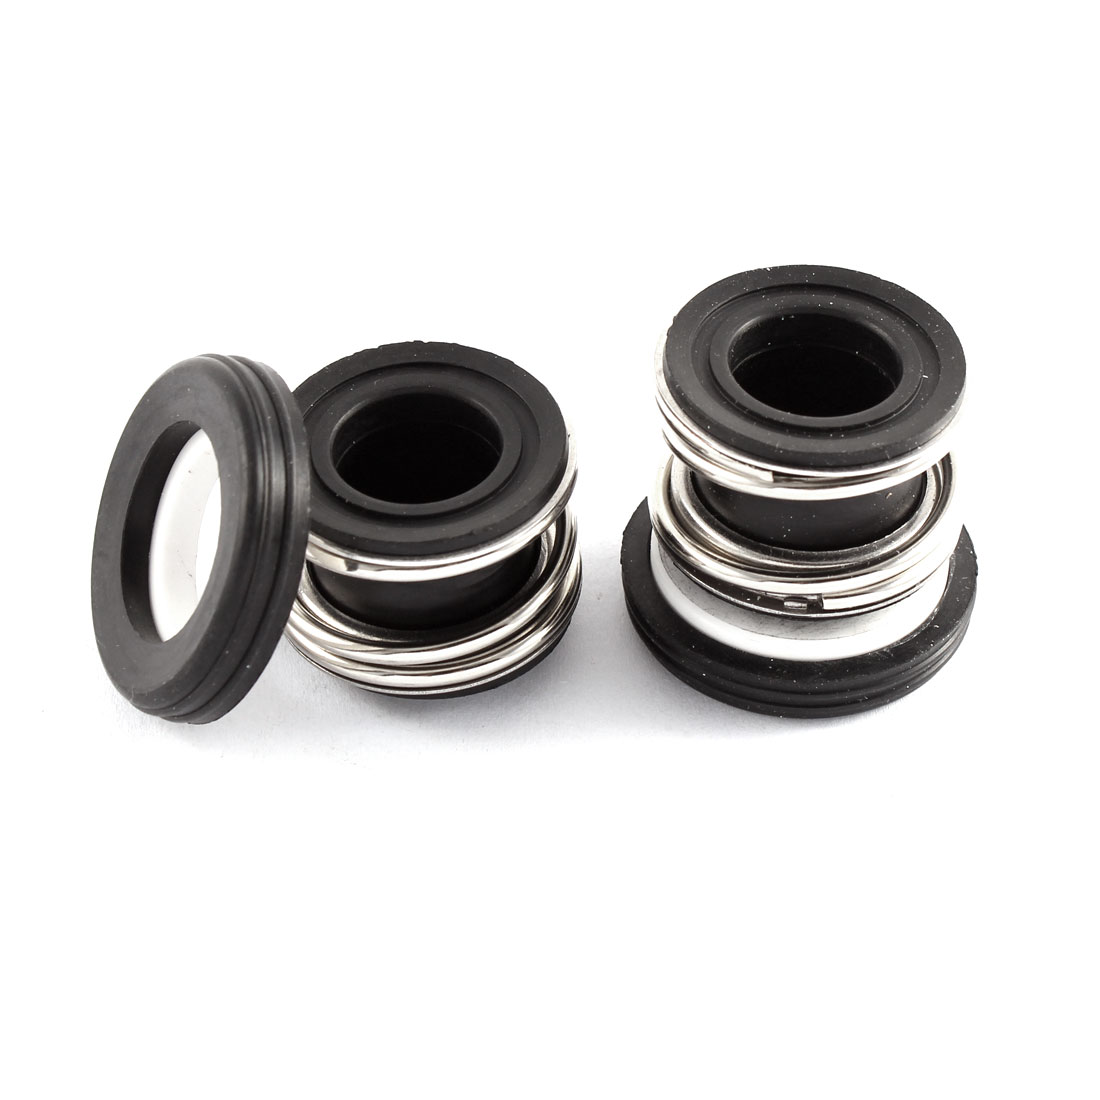 16mm Internal Dia 25mm Height Metal Single Spring Bellows Mechanical Seal 2Pcs